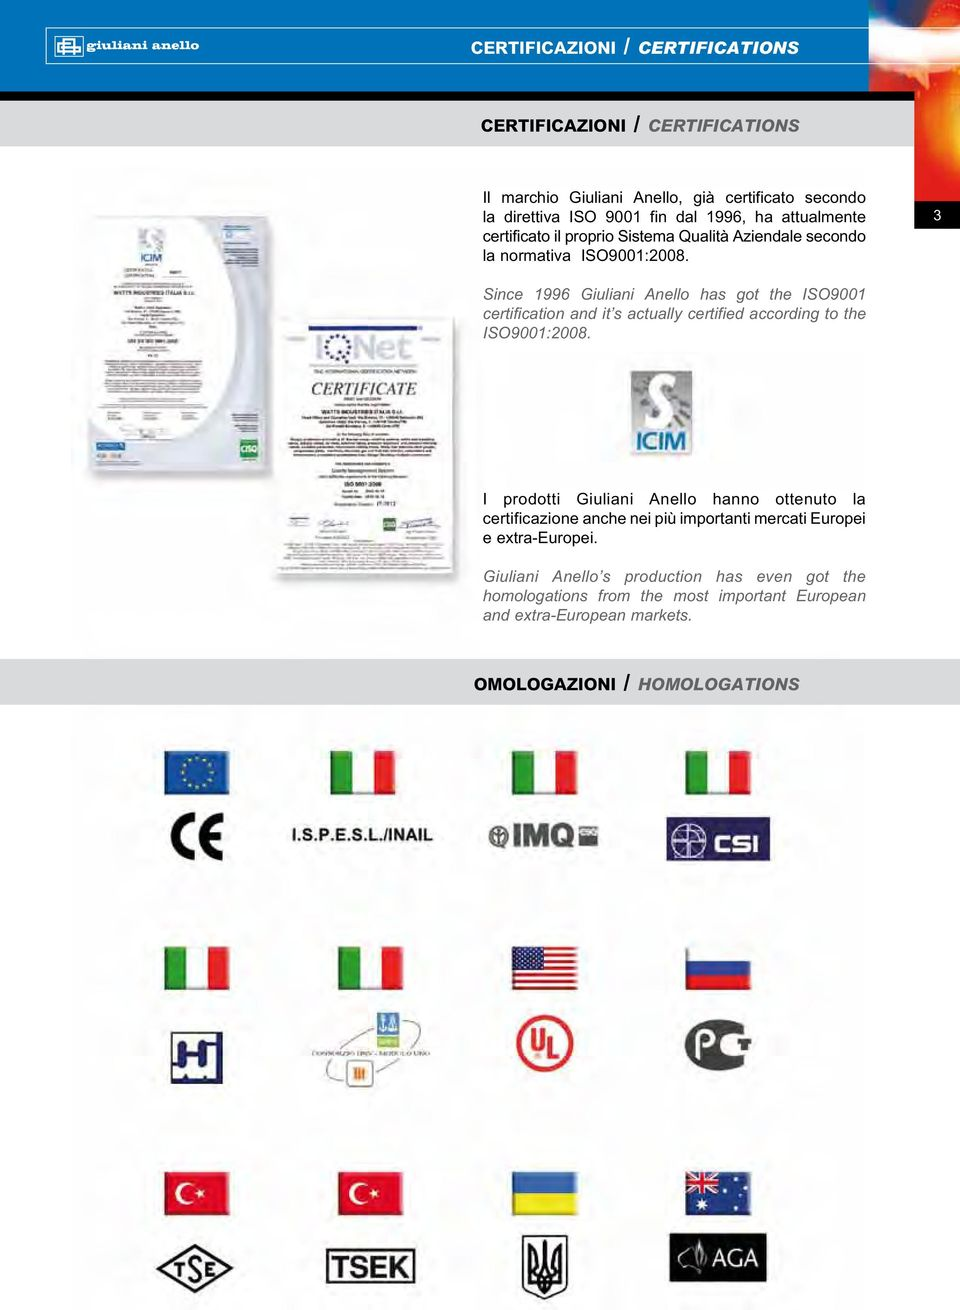 3 Since 996 Giuliani Anello has got the ISO900 certification and it s actually certified according to the ISO900:2008.